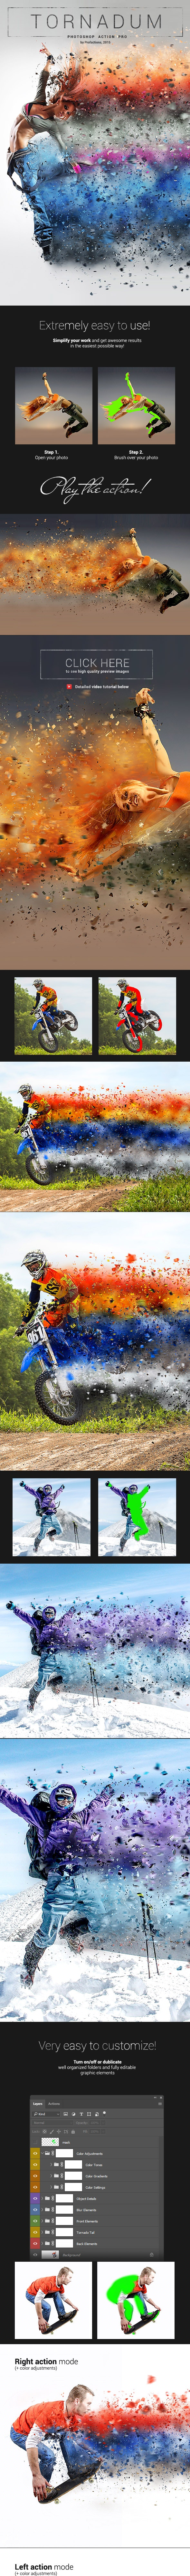 Tornadum - Powerful Dispersion Photoshop Action - Photo Effects Actions